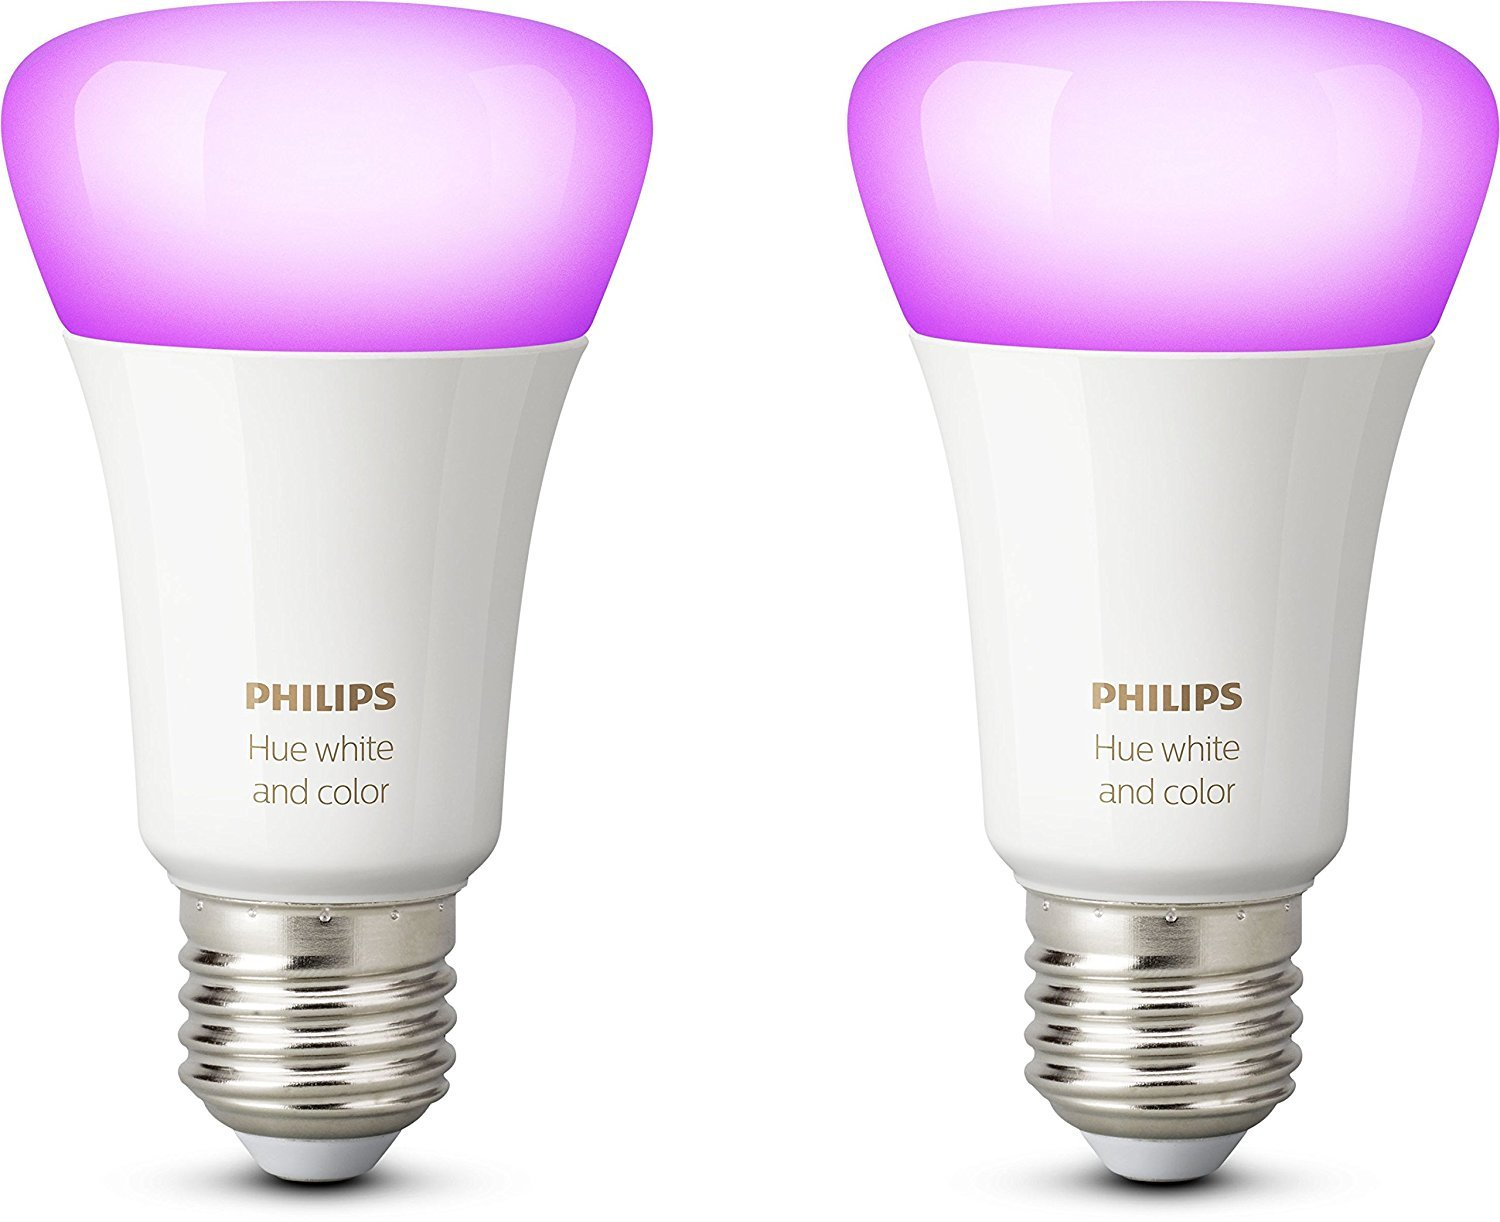 2321726 philips hue white and color ambiance led lampe doppelpack e27 2er pack ebay. Black Bedroom Furniture Sets. Home Design Ideas